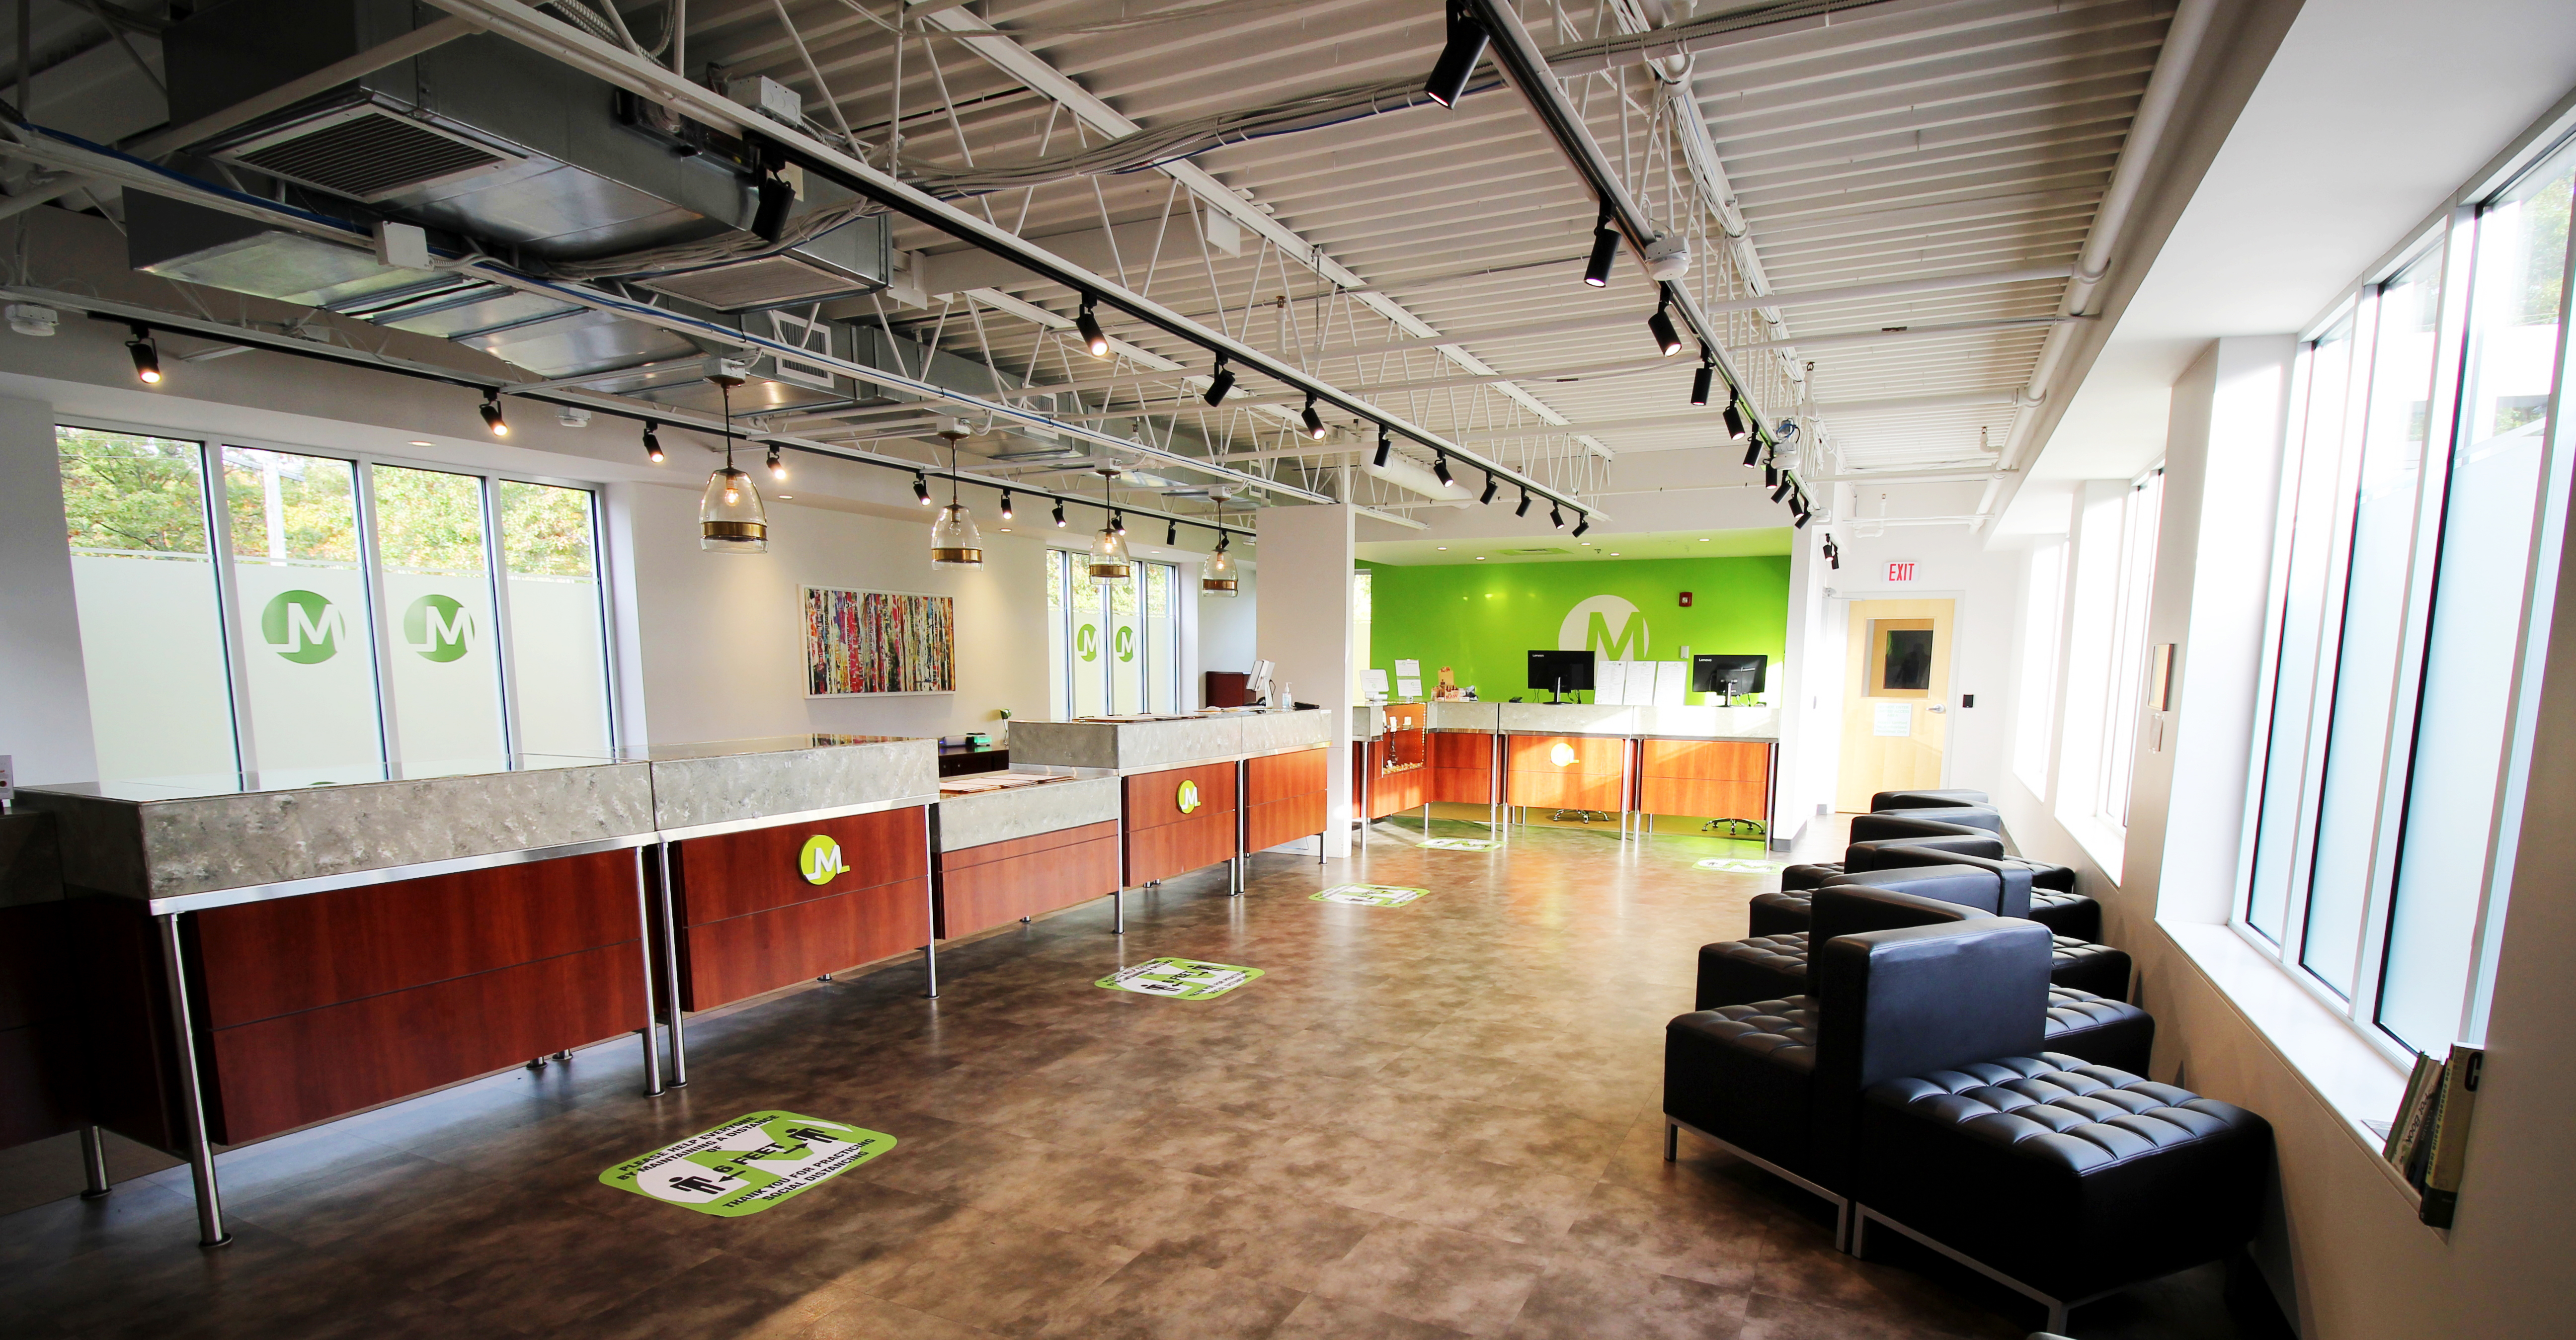 Triple M Plymouth Medical Dispensary